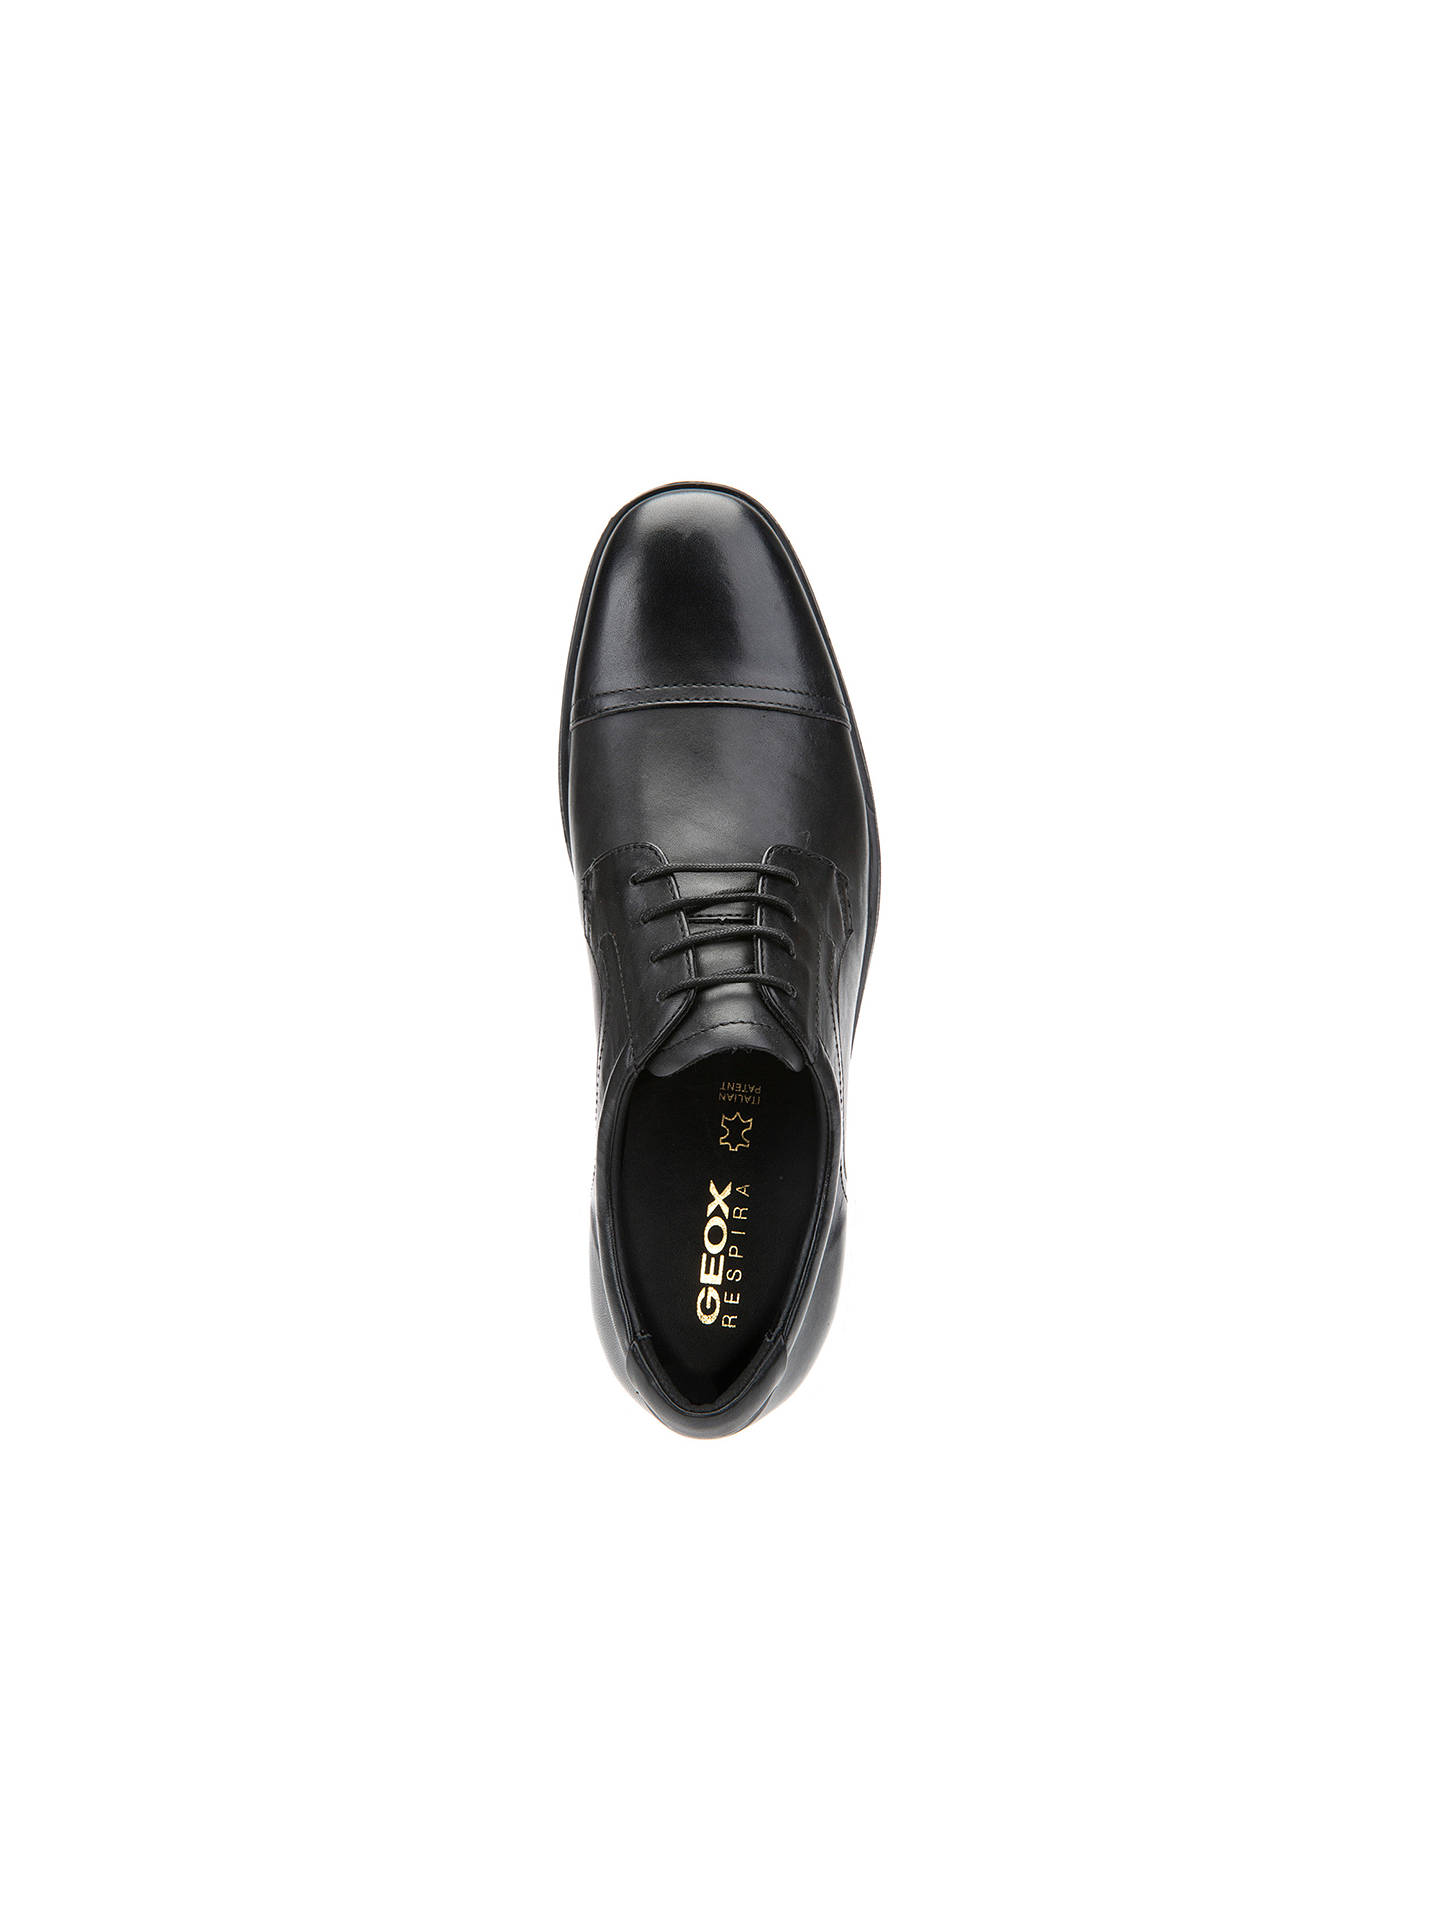 low priced 218d5 554a7 Geox Dublin Derby Shoes, Black